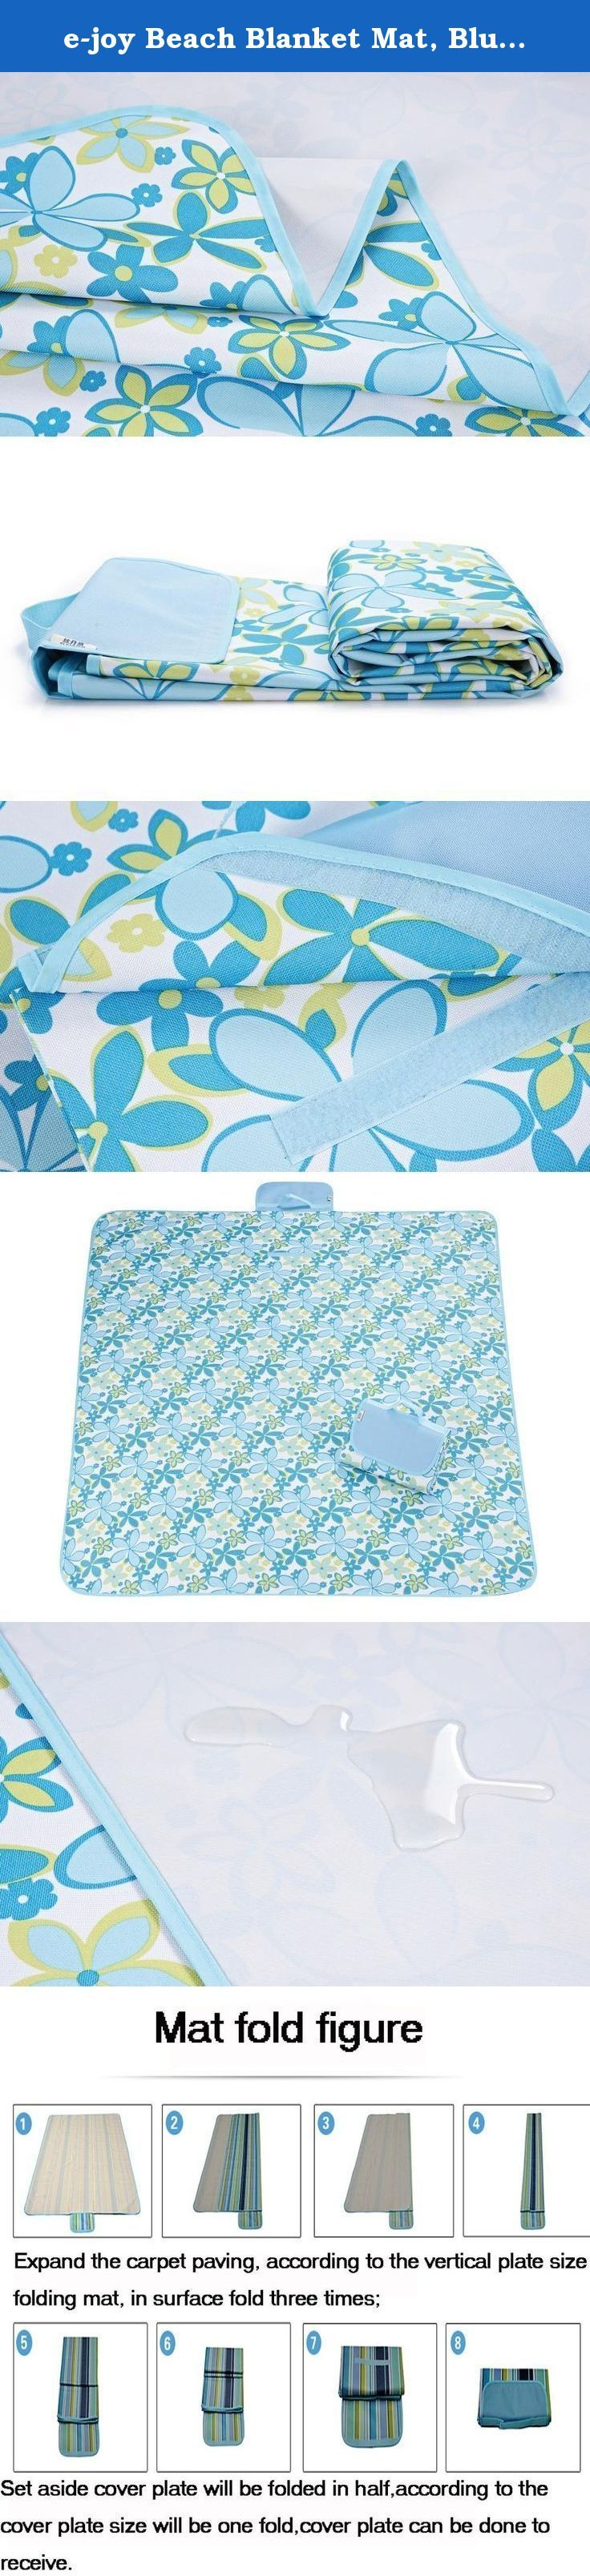 "e-joy Beach Blanket Mat, Blue Lily. Enjoy enjoy outdoor life . Enjoy believes spending time with family and friends bring us happiness, pleasure and life satisfaction. We are dedicated to provide high quality premium products to make your leisure time with your loved ones even more enjoyable. Let's go outside and enjoy your sunny day with enjoy blanket. Benefits and design: Folds out: 56""x 70"", folds down: 8"" x 12"", water resistant top dries quickly once wet, water proof PVC bottom…"